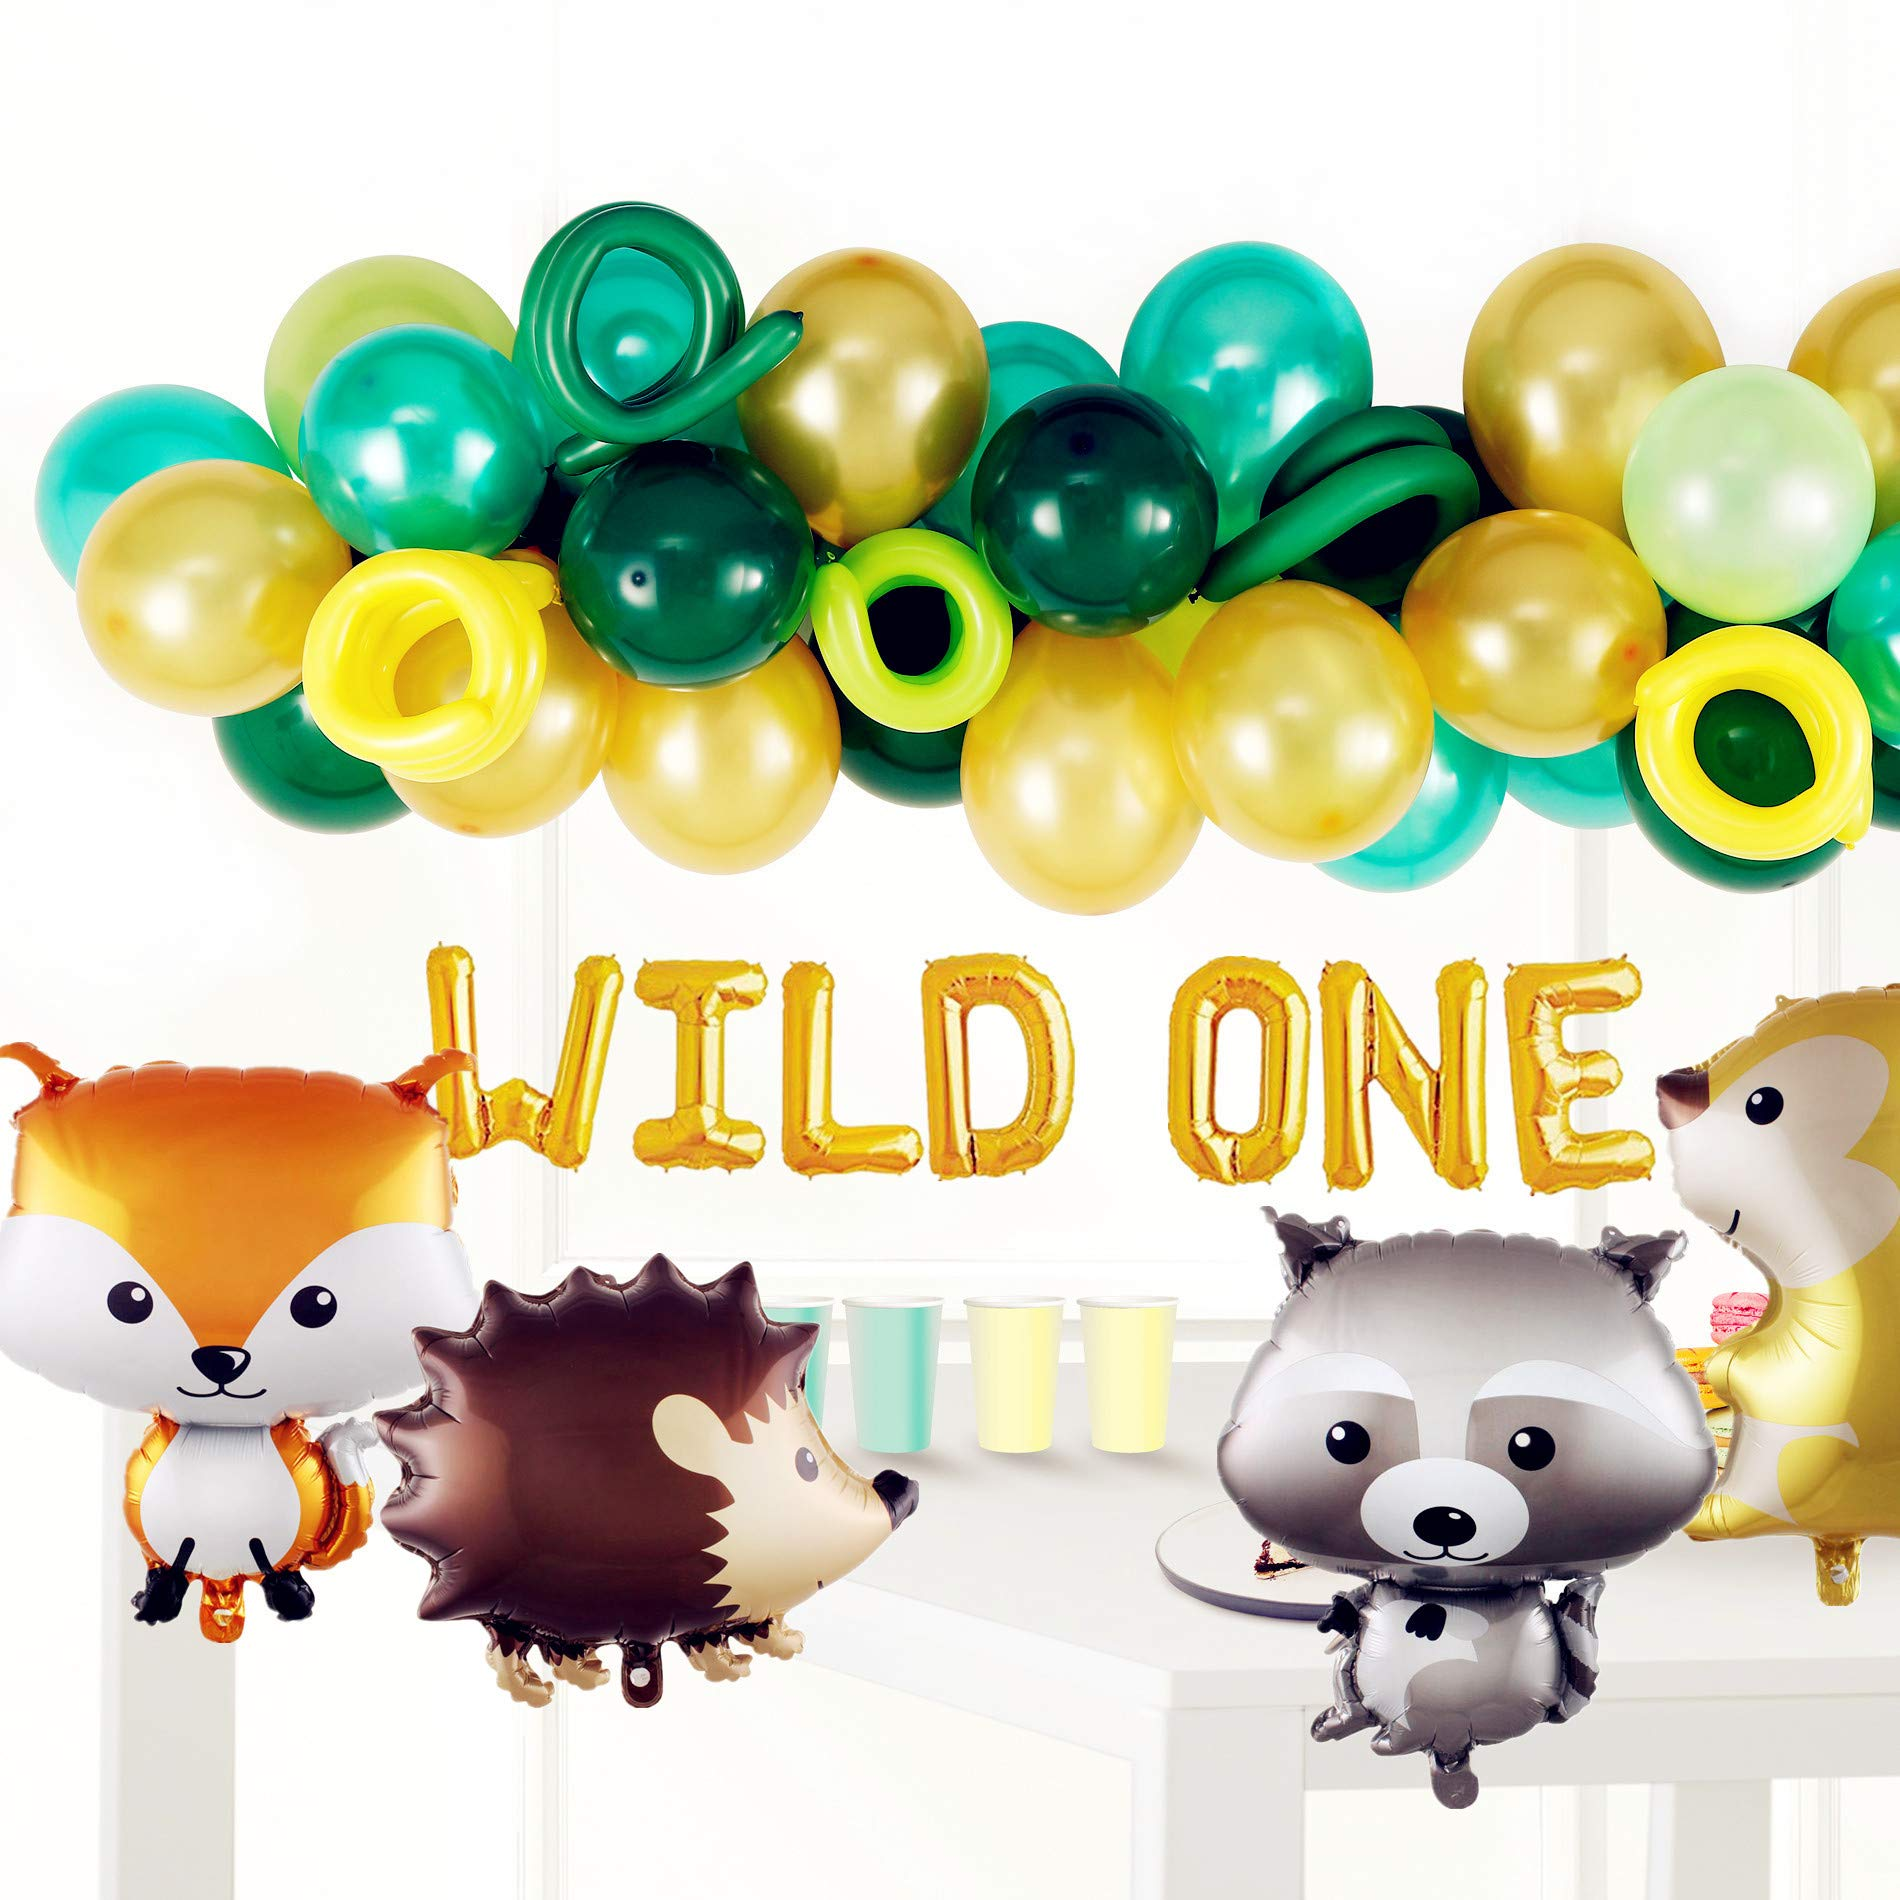 Wild One 1st First Theme Birthday Baby Shower Decorations for Boys Girl Balloons for Birthday Party Jungle Safari Tropical Theme Sage Green Balloons Baby Shower Party Supplies Decorations Decor